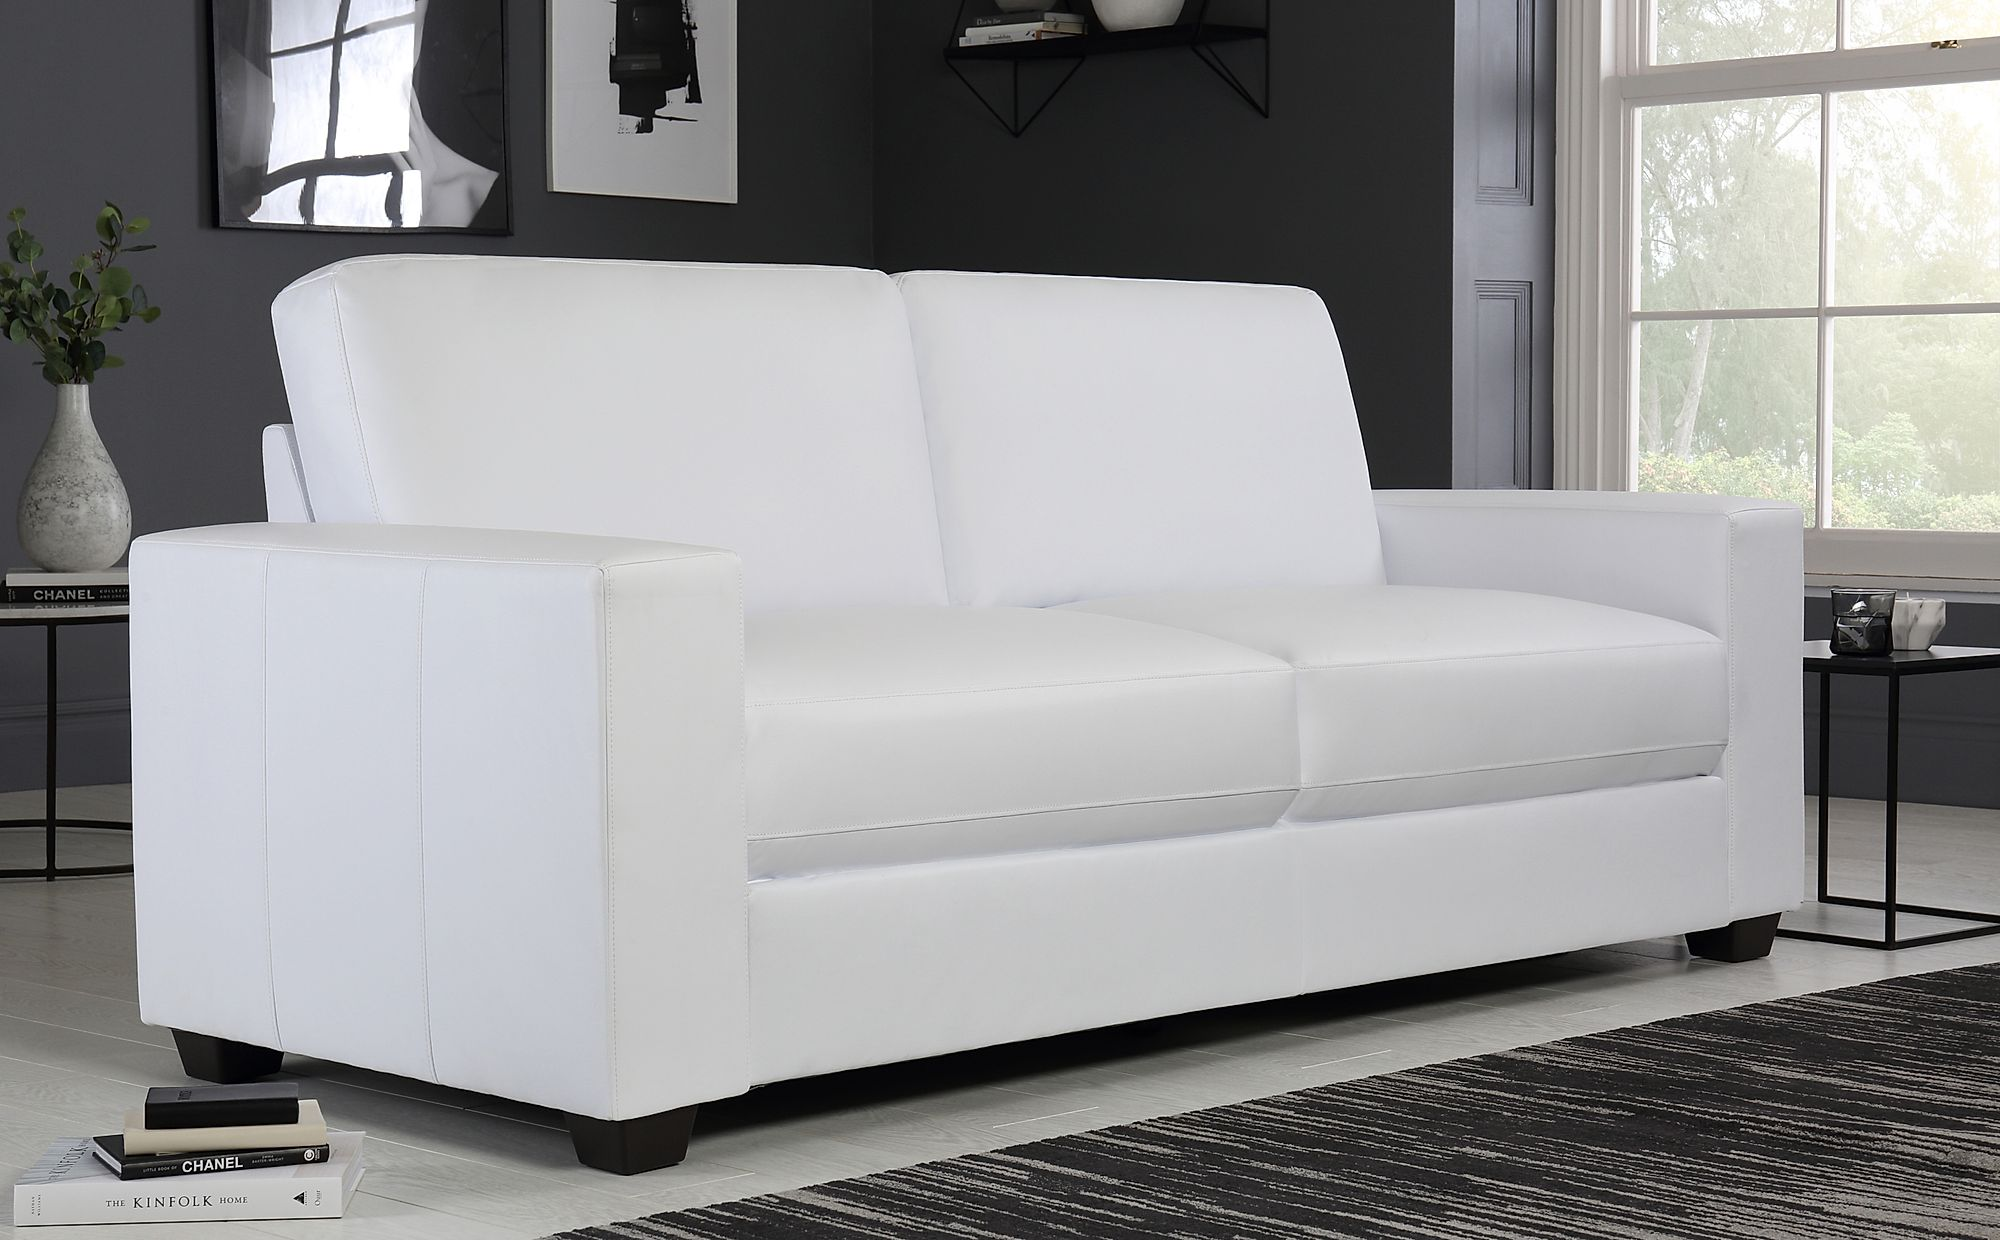 Terrific Mission White Leather 3 Seater Sofa Ibusinesslaw Wood Chair Design Ideas Ibusinesslaworg